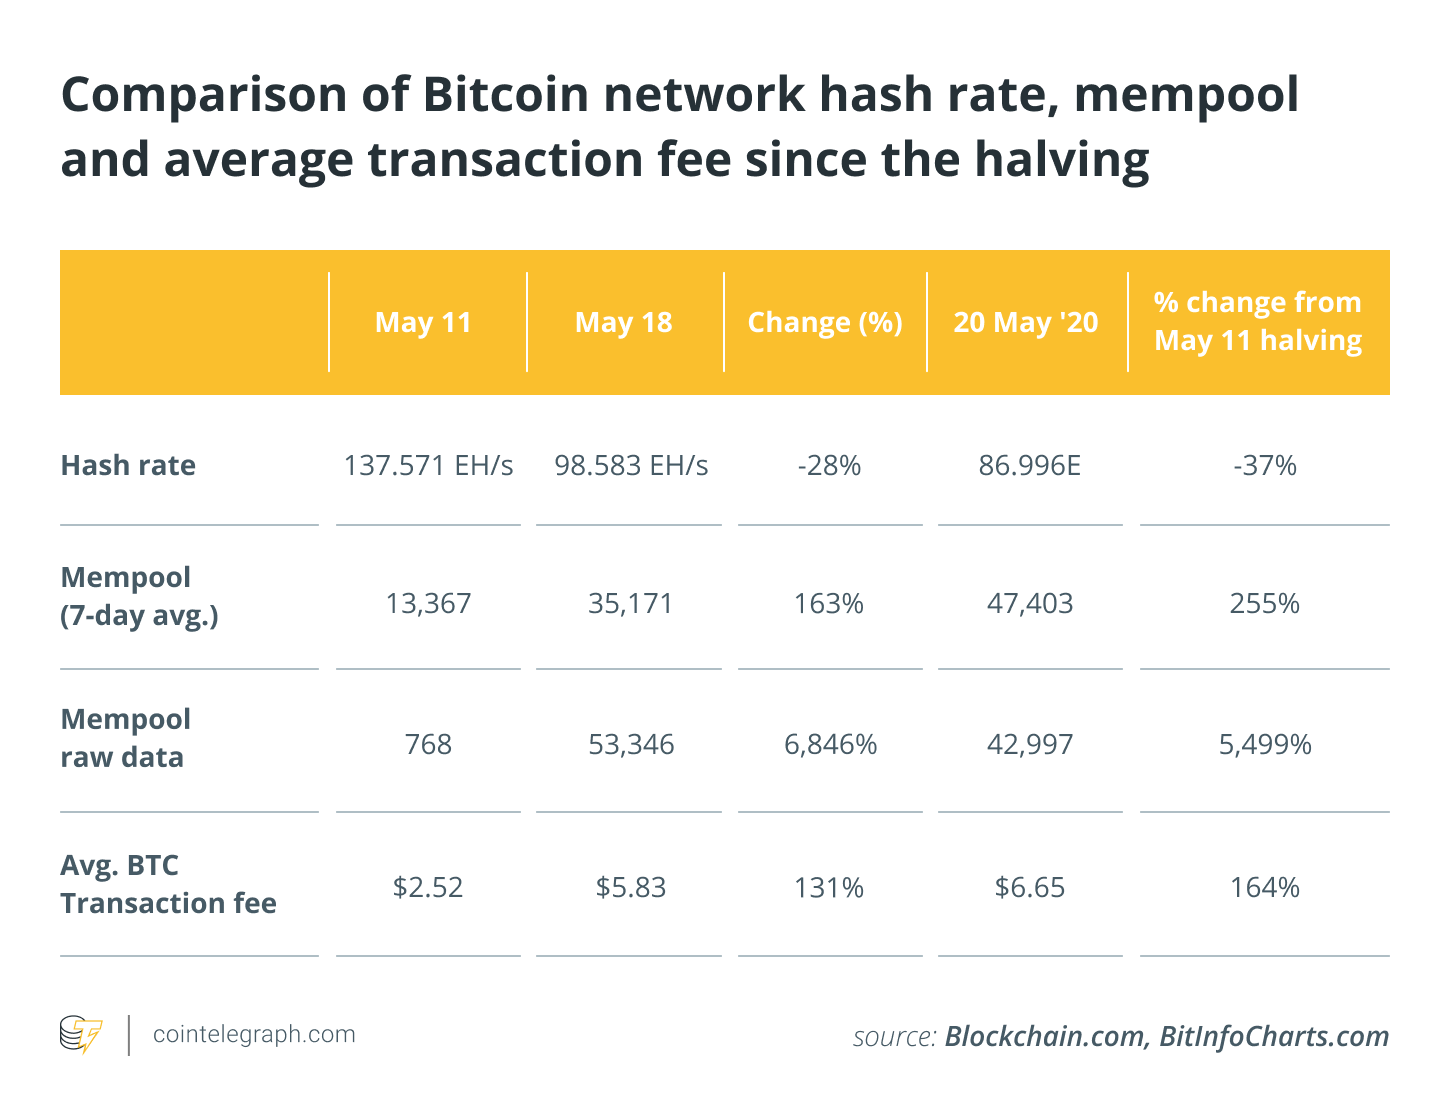 Comparison of Bitcoin network hash rate, mempool and average transaction fee since the halving